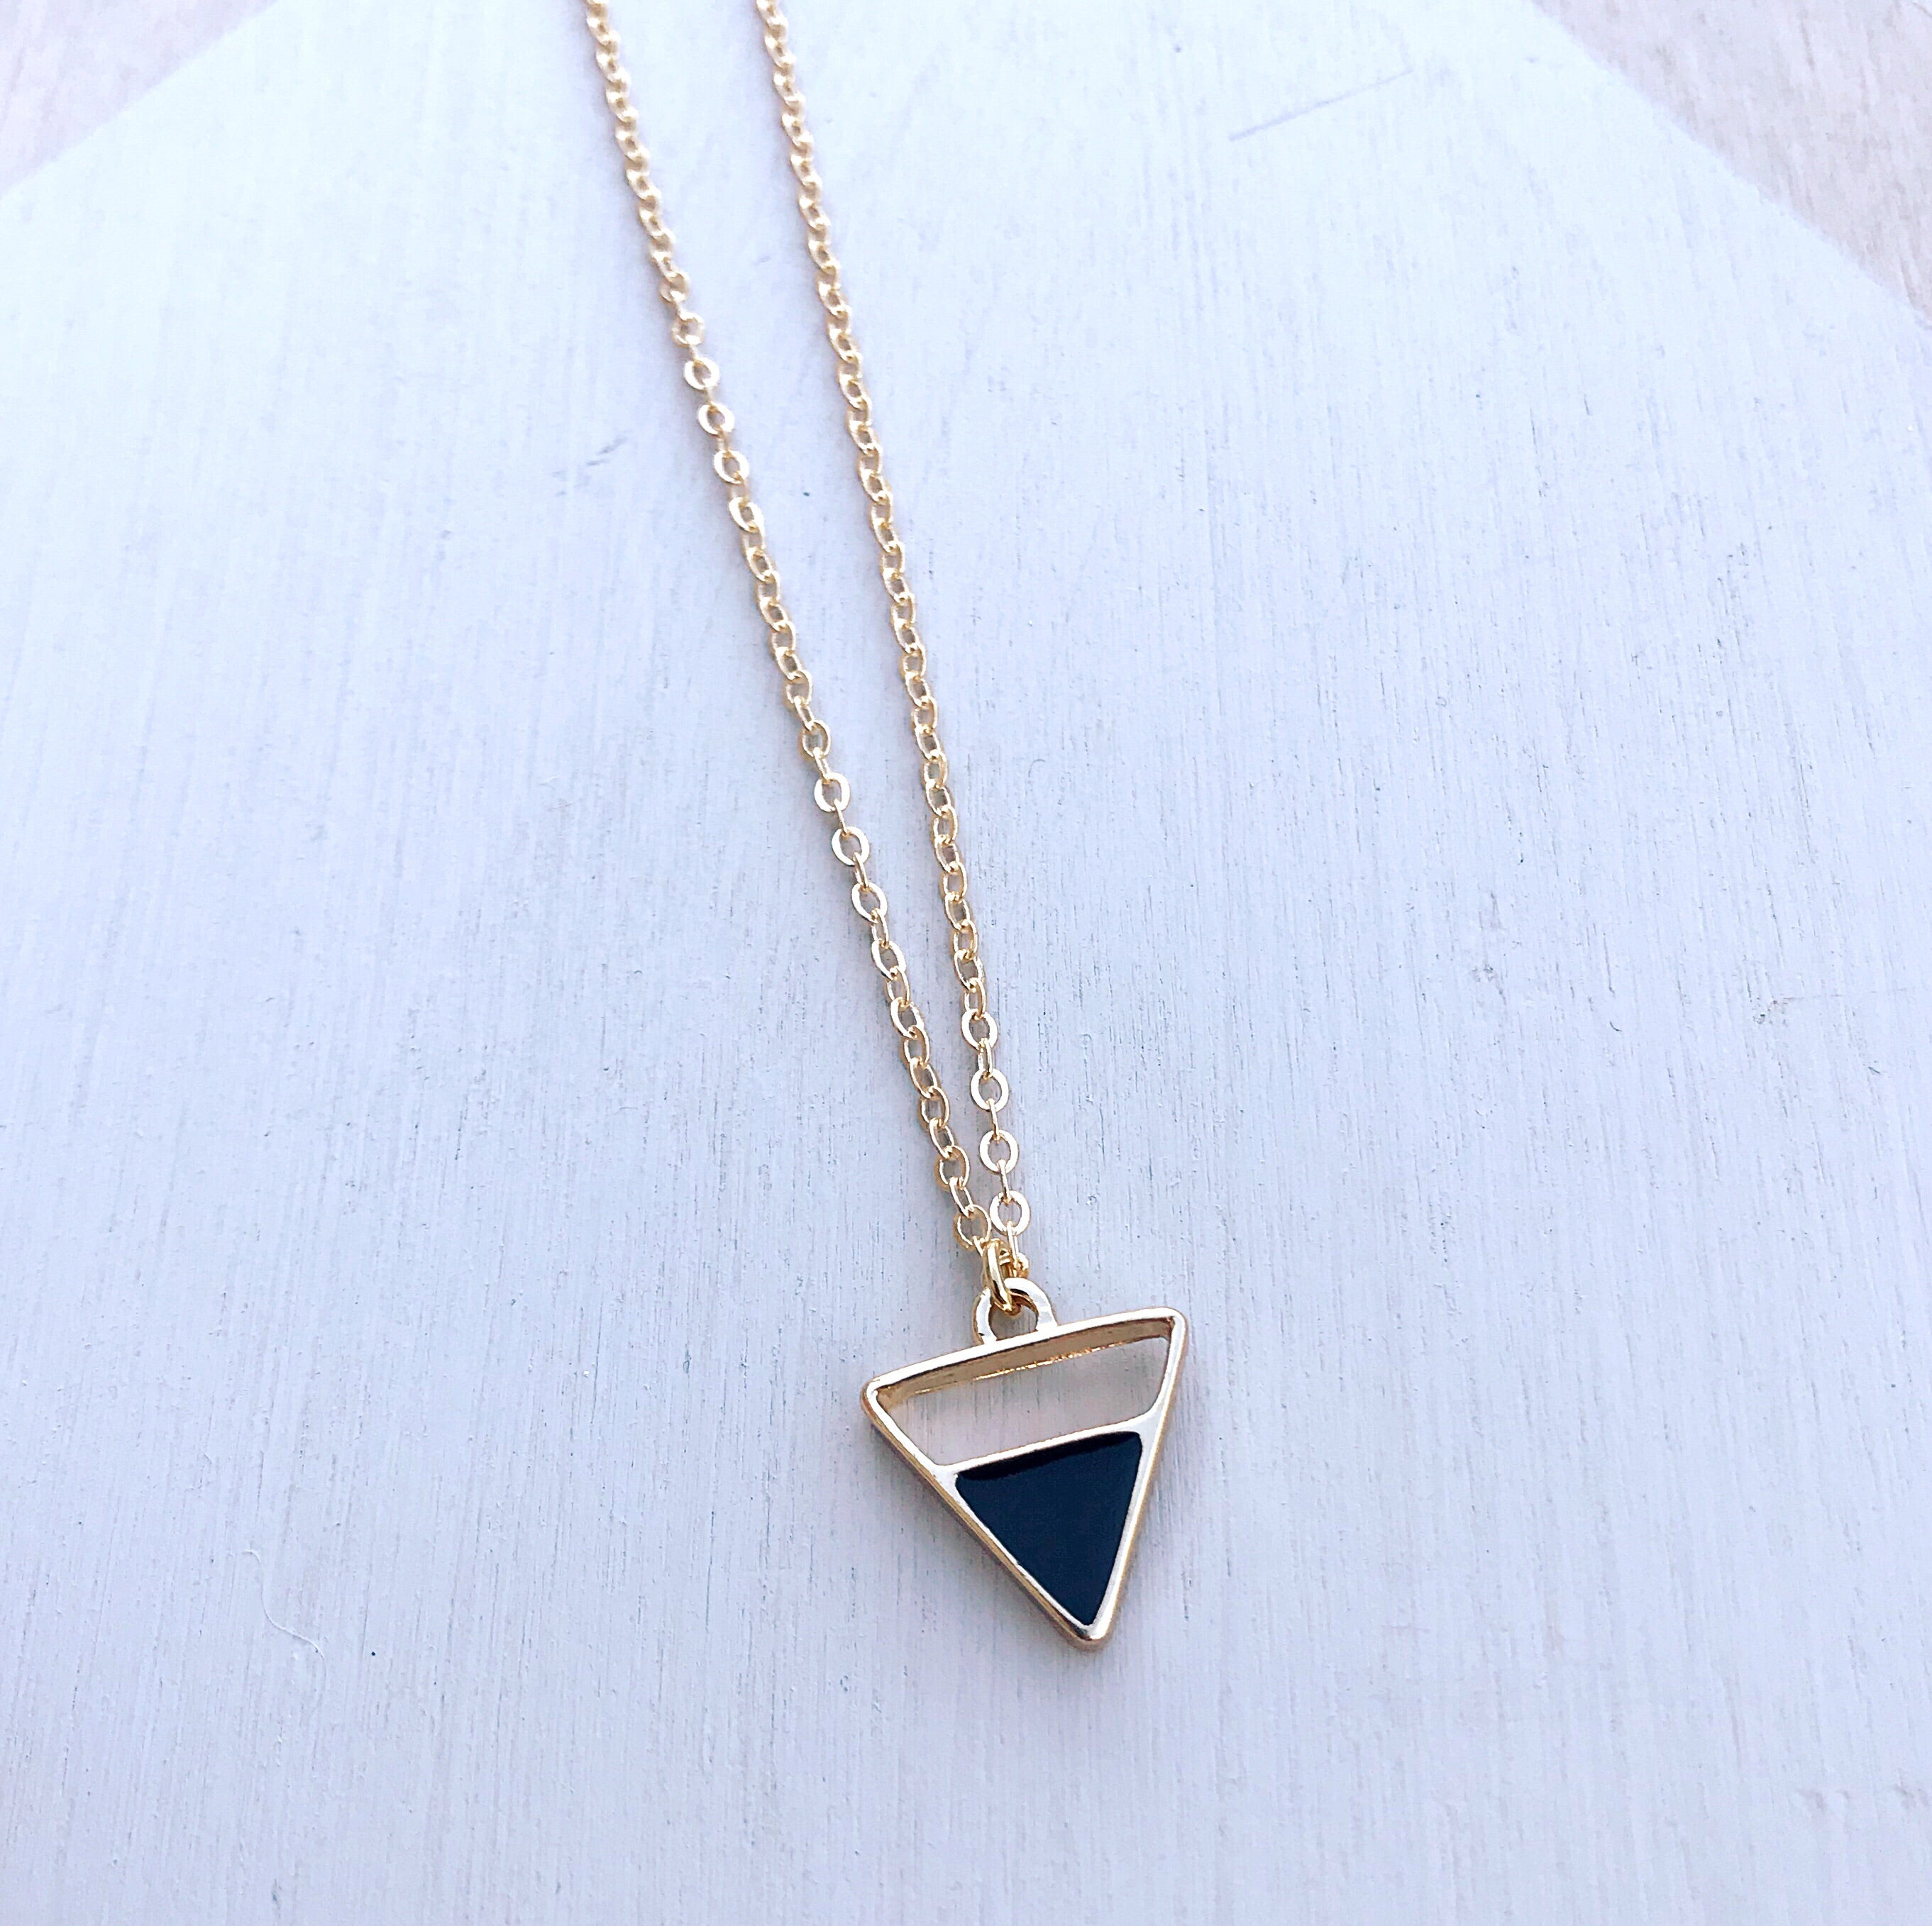 Black Enamel Triangle Pendant Necklace